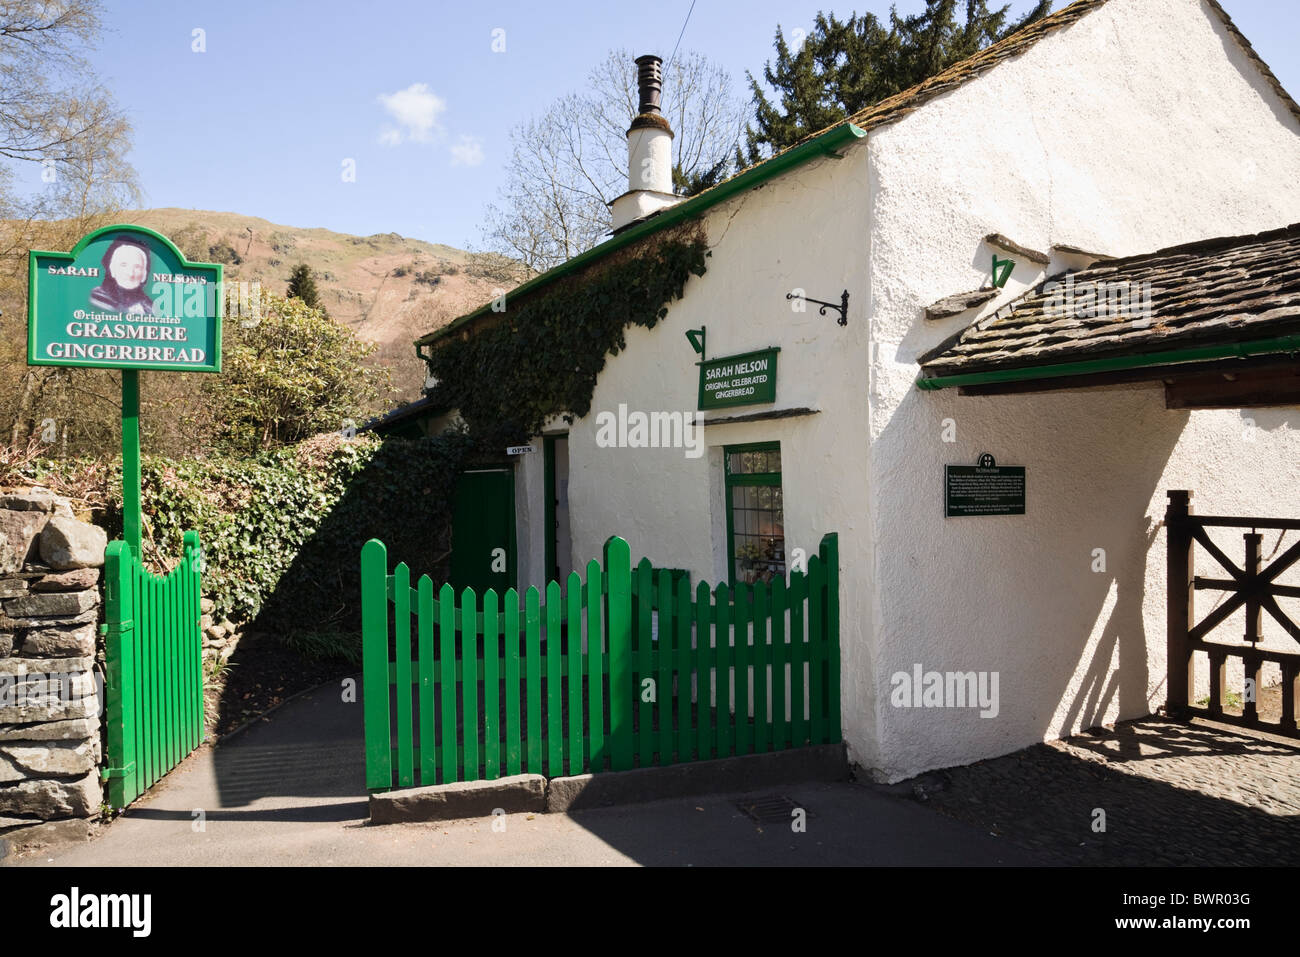 Sarah Nelson's Gingerbread shop in a tiny old school building in Lake District National Park village Grasmere - Stock Image